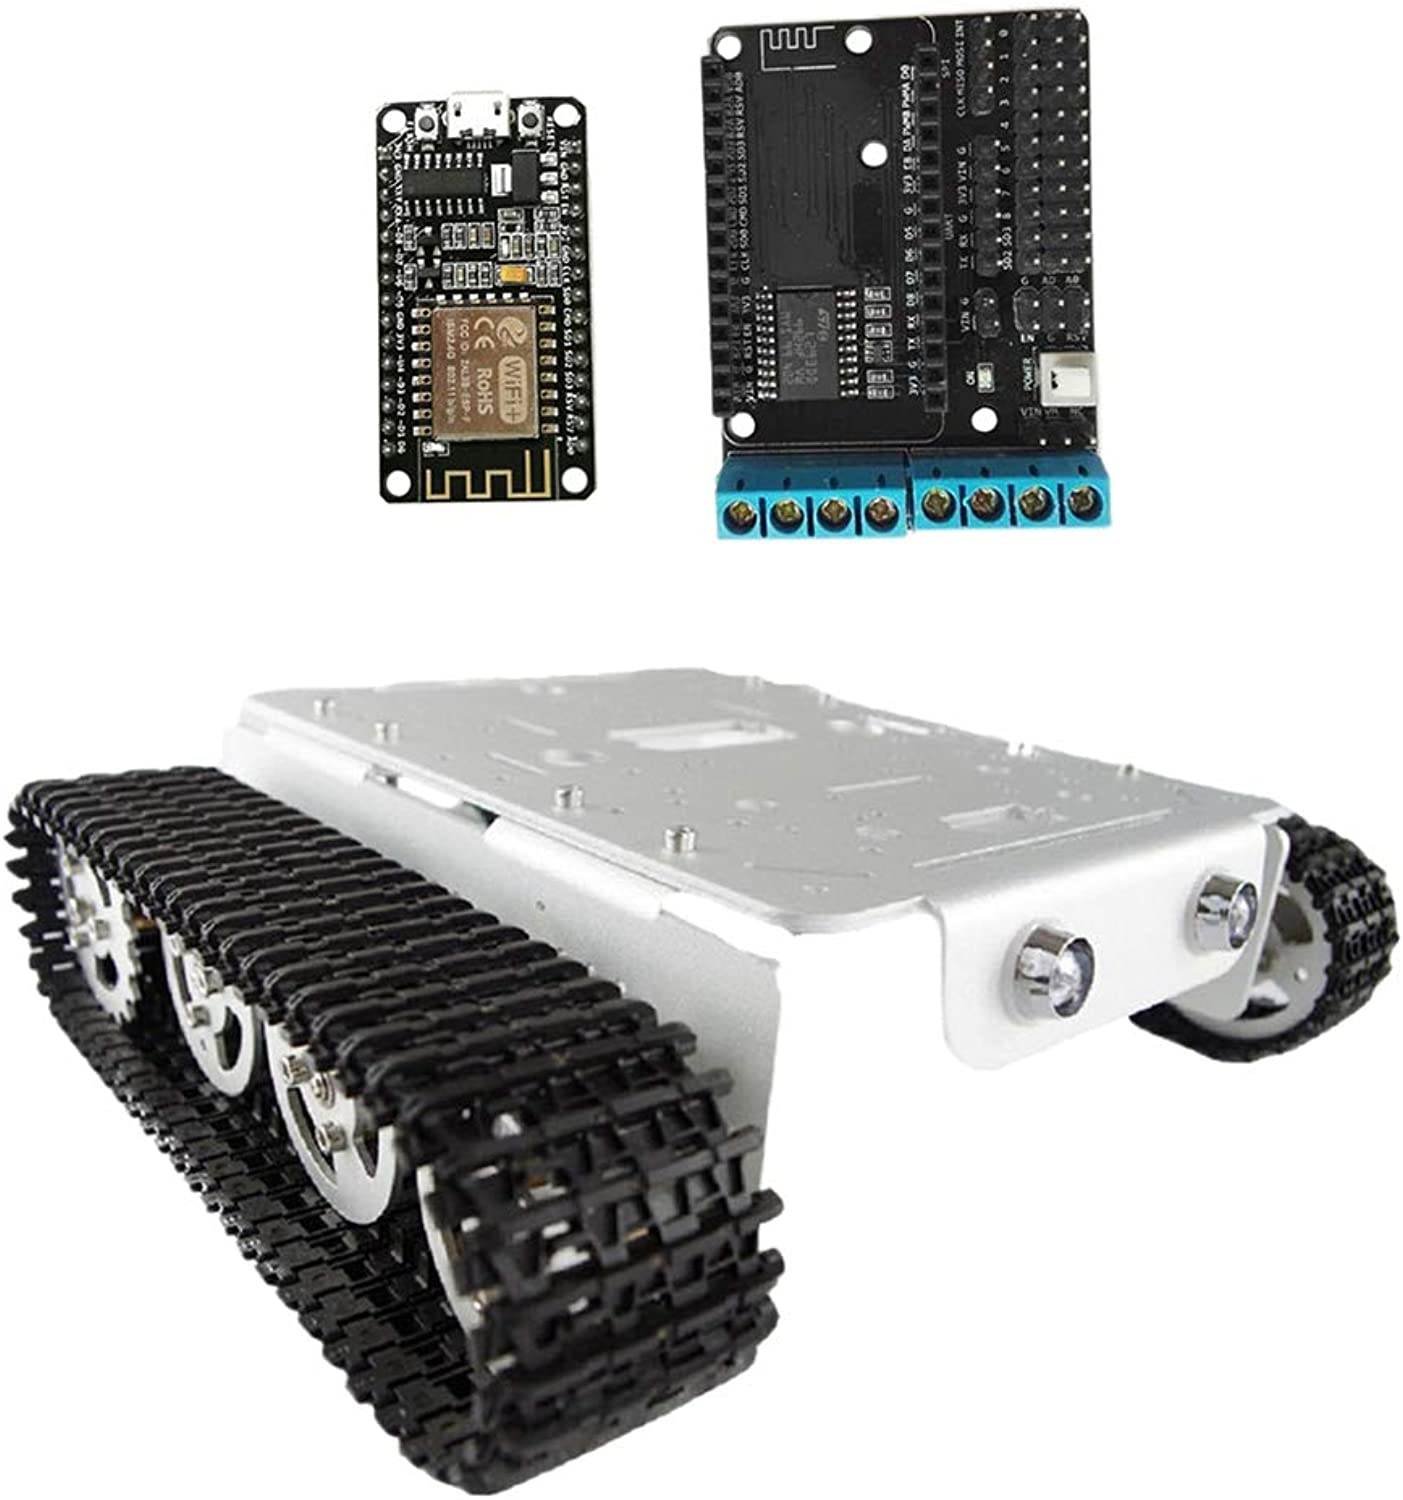 B Blesiya Smart Tank Chassis Remote Control Platform for Arduino DIY  Car   Toy  Silver  Support Local Control and Remote Control